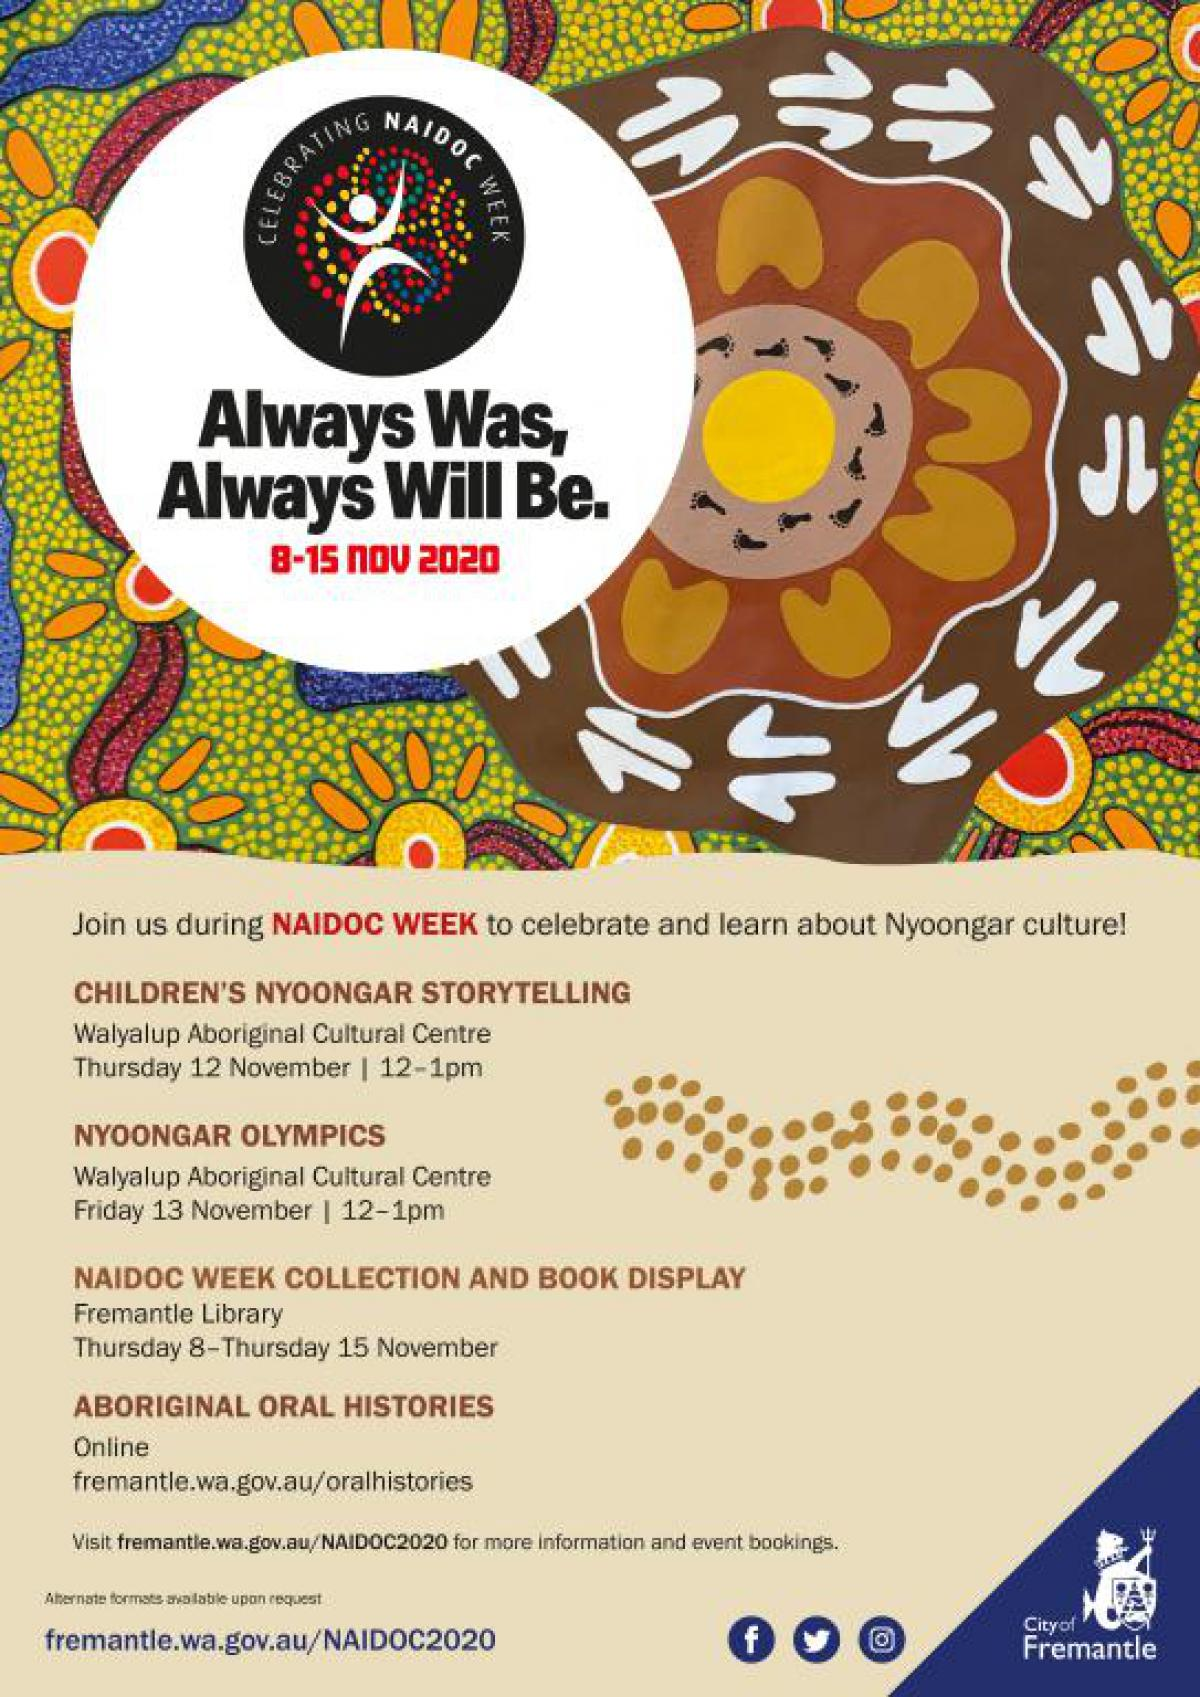 Join us during NAIDOC WEEK to celebrate and learn about Nyoongar culture!  CHILDREN'S NYOONGAR STORYTELLING Walyalup Aboriginal Cultural Centre Thursday 12 November | 12–1pm NYOONGAR OLYMPICS Walyalup Aboriginal Cultural Centre Friday 13 November | 12–1pm NAIDOC WEEK COLLECTION AND BOOK DISPLAY Fremantle Library Thursday 8–Thursday 15 November ABORIGINAL ORAL HISTORIES Online fremantle.wa.gov.au/oralhistories Visit fremantle.wa.gov.au/NAIDOC2020 for more information and event bookings.